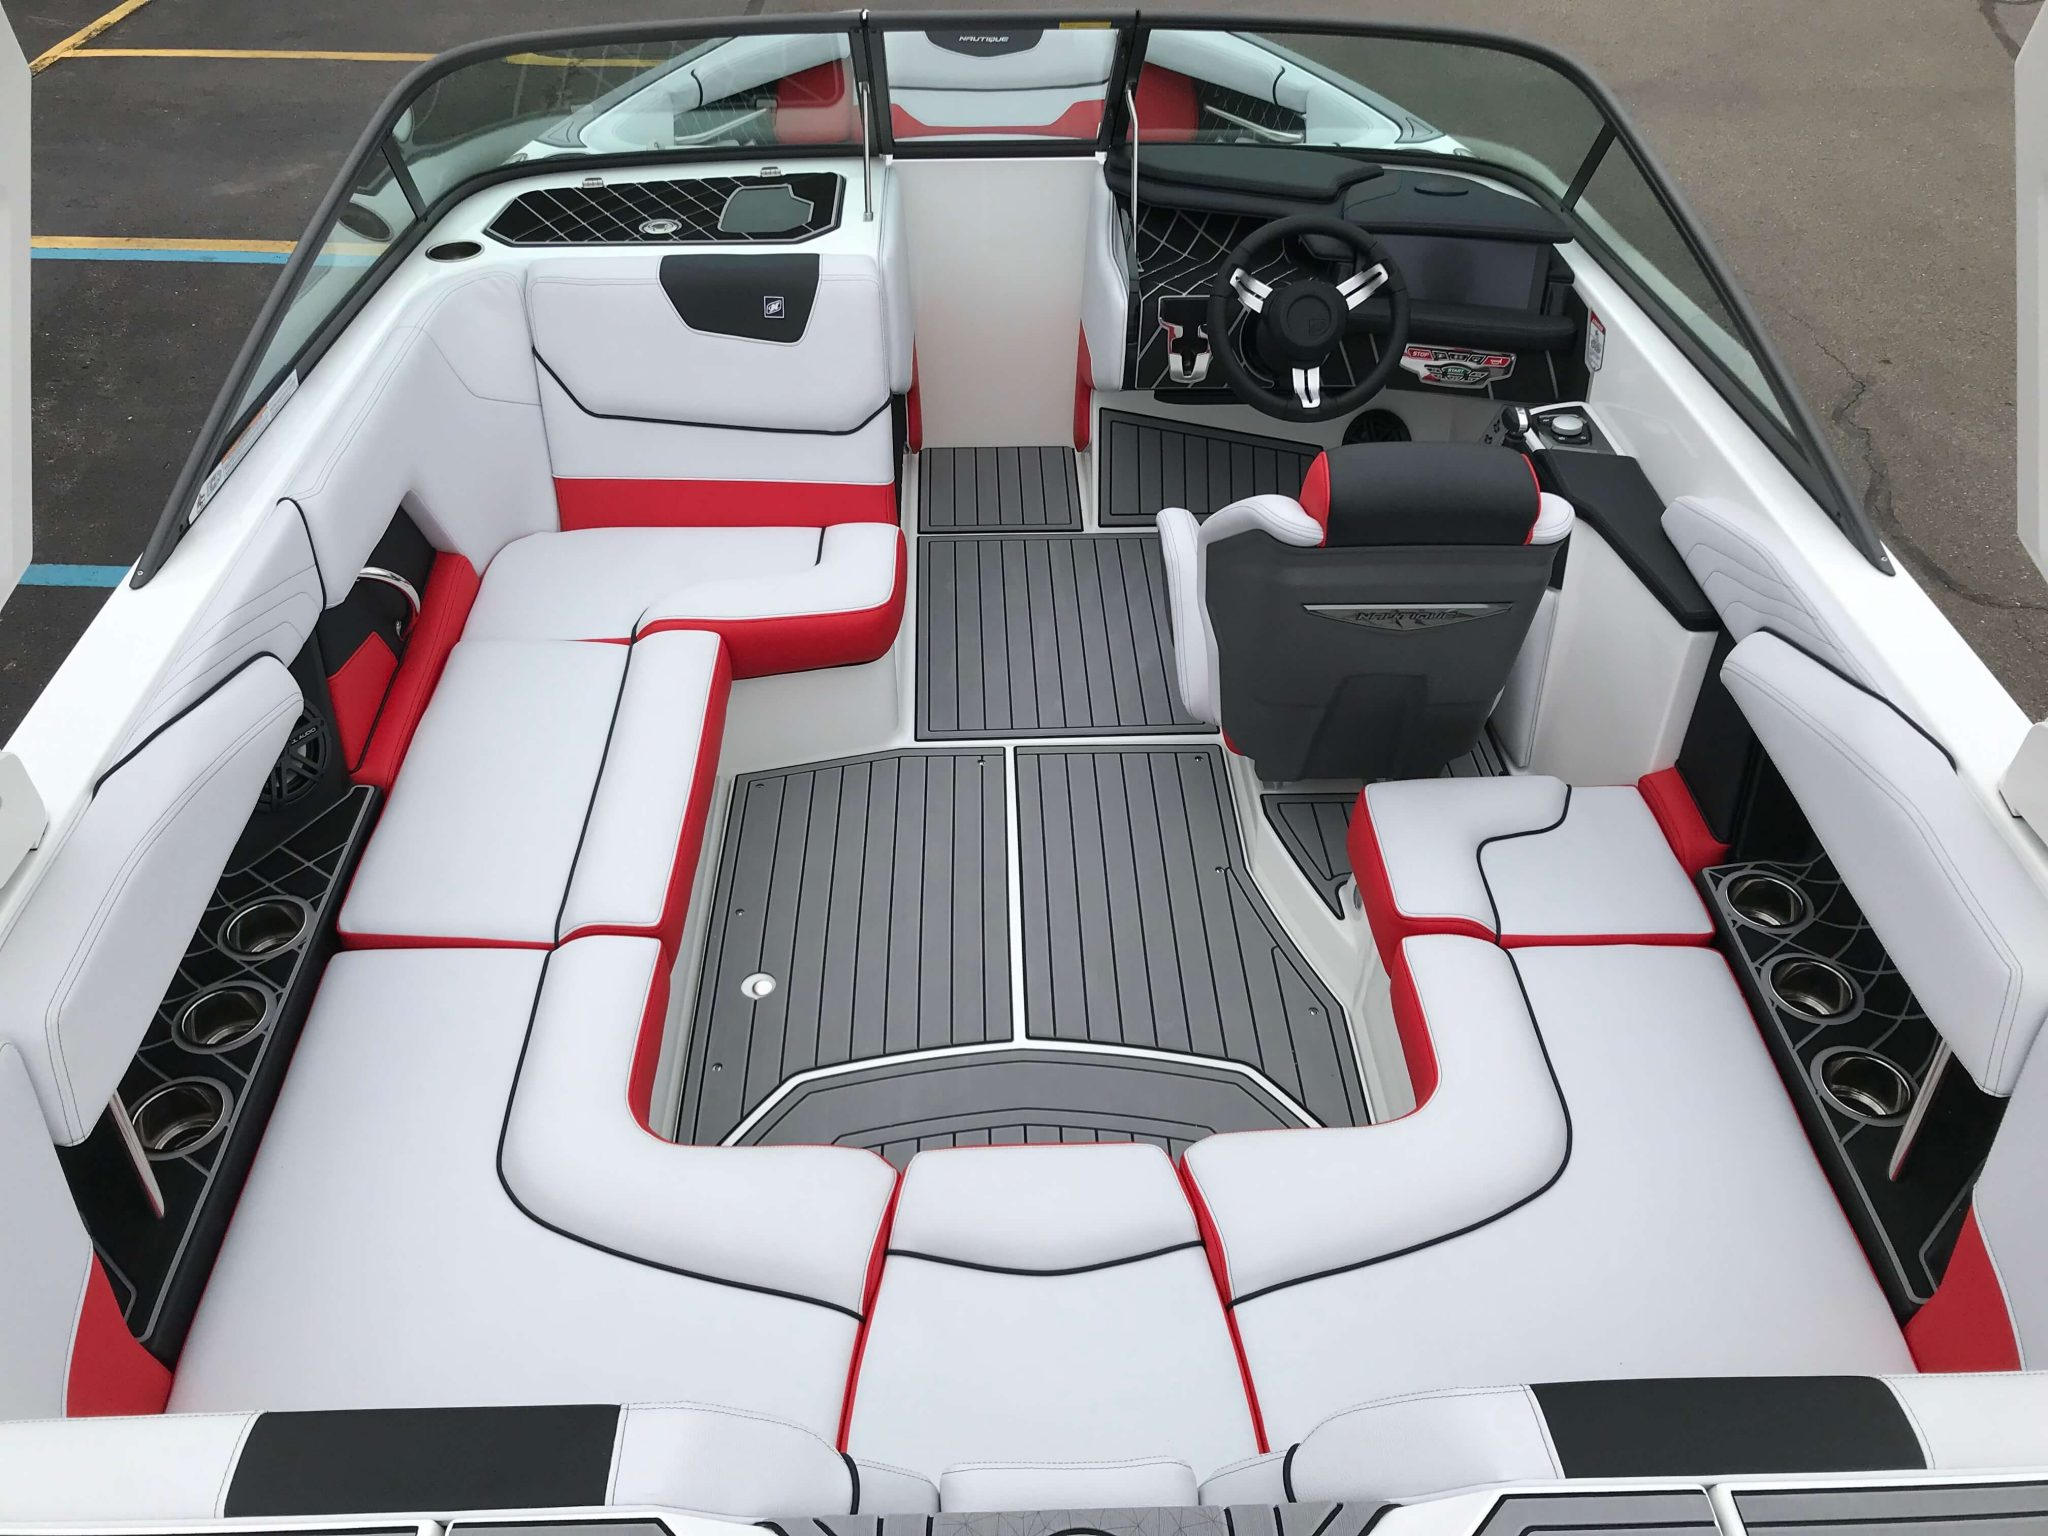 2019 Nautique GS20 Interior Layout 1